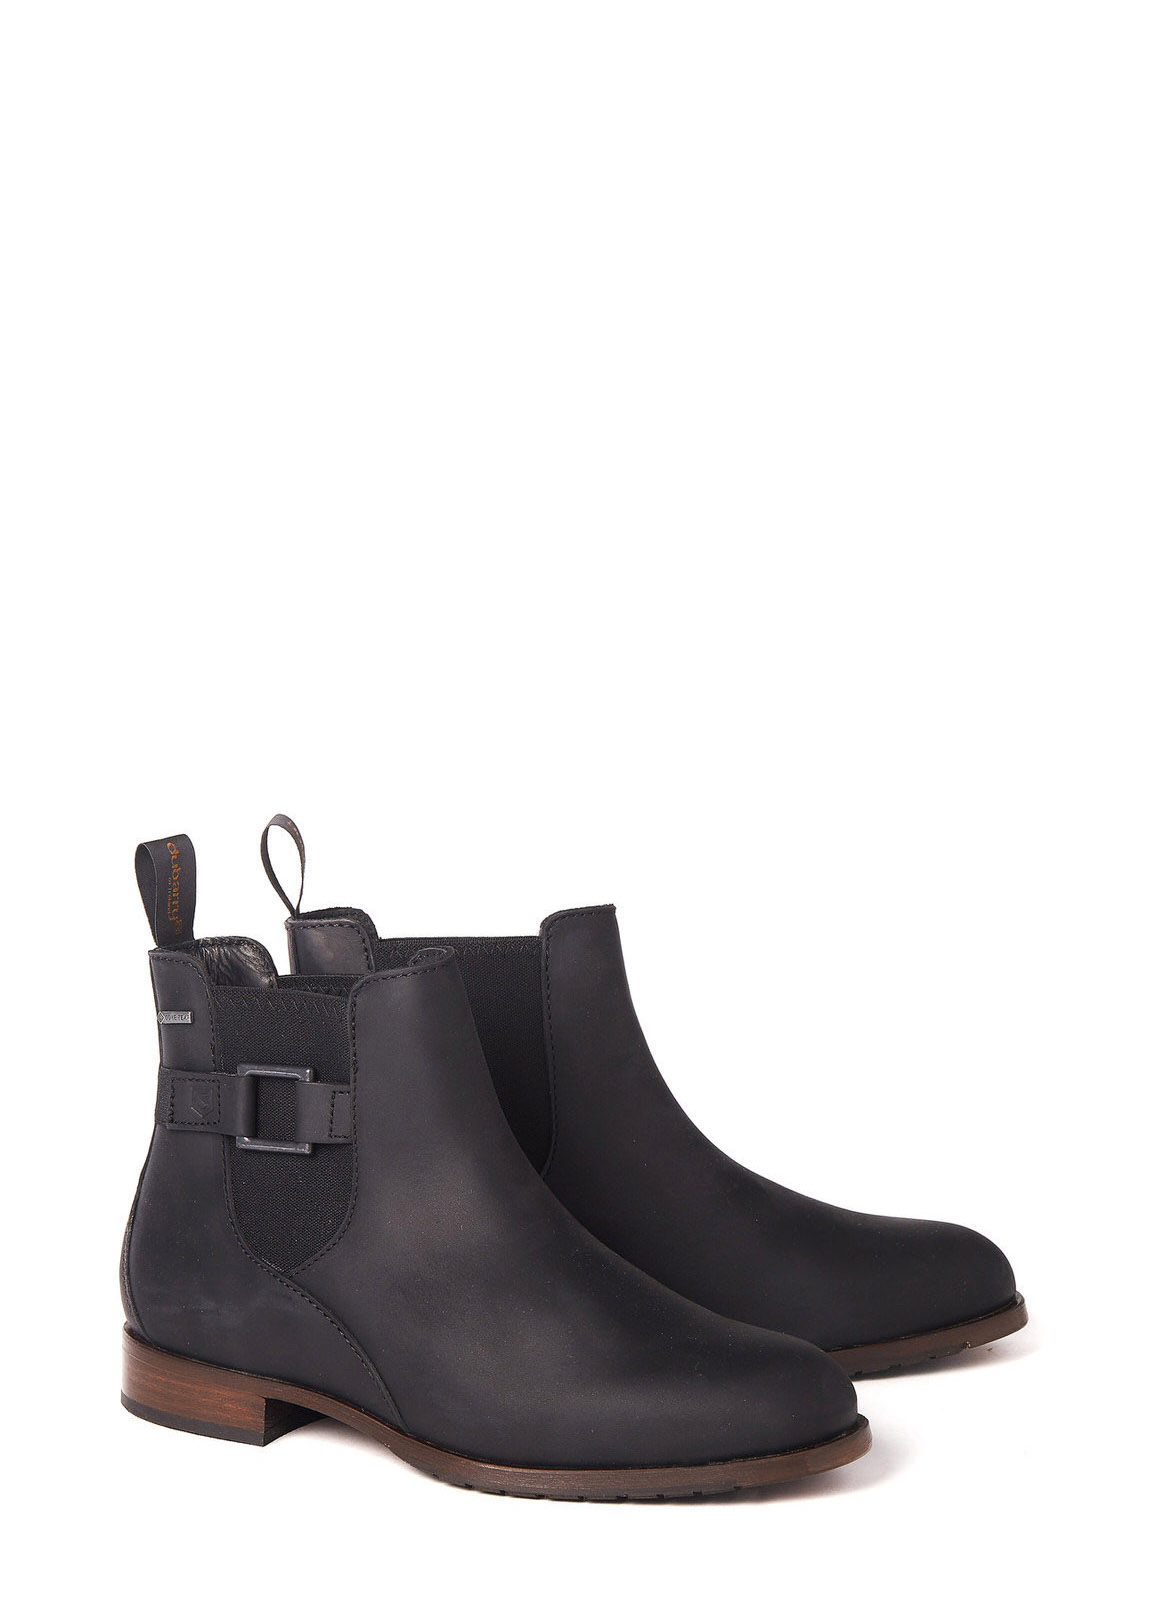 Monaghan Leather Soled Boot - Black